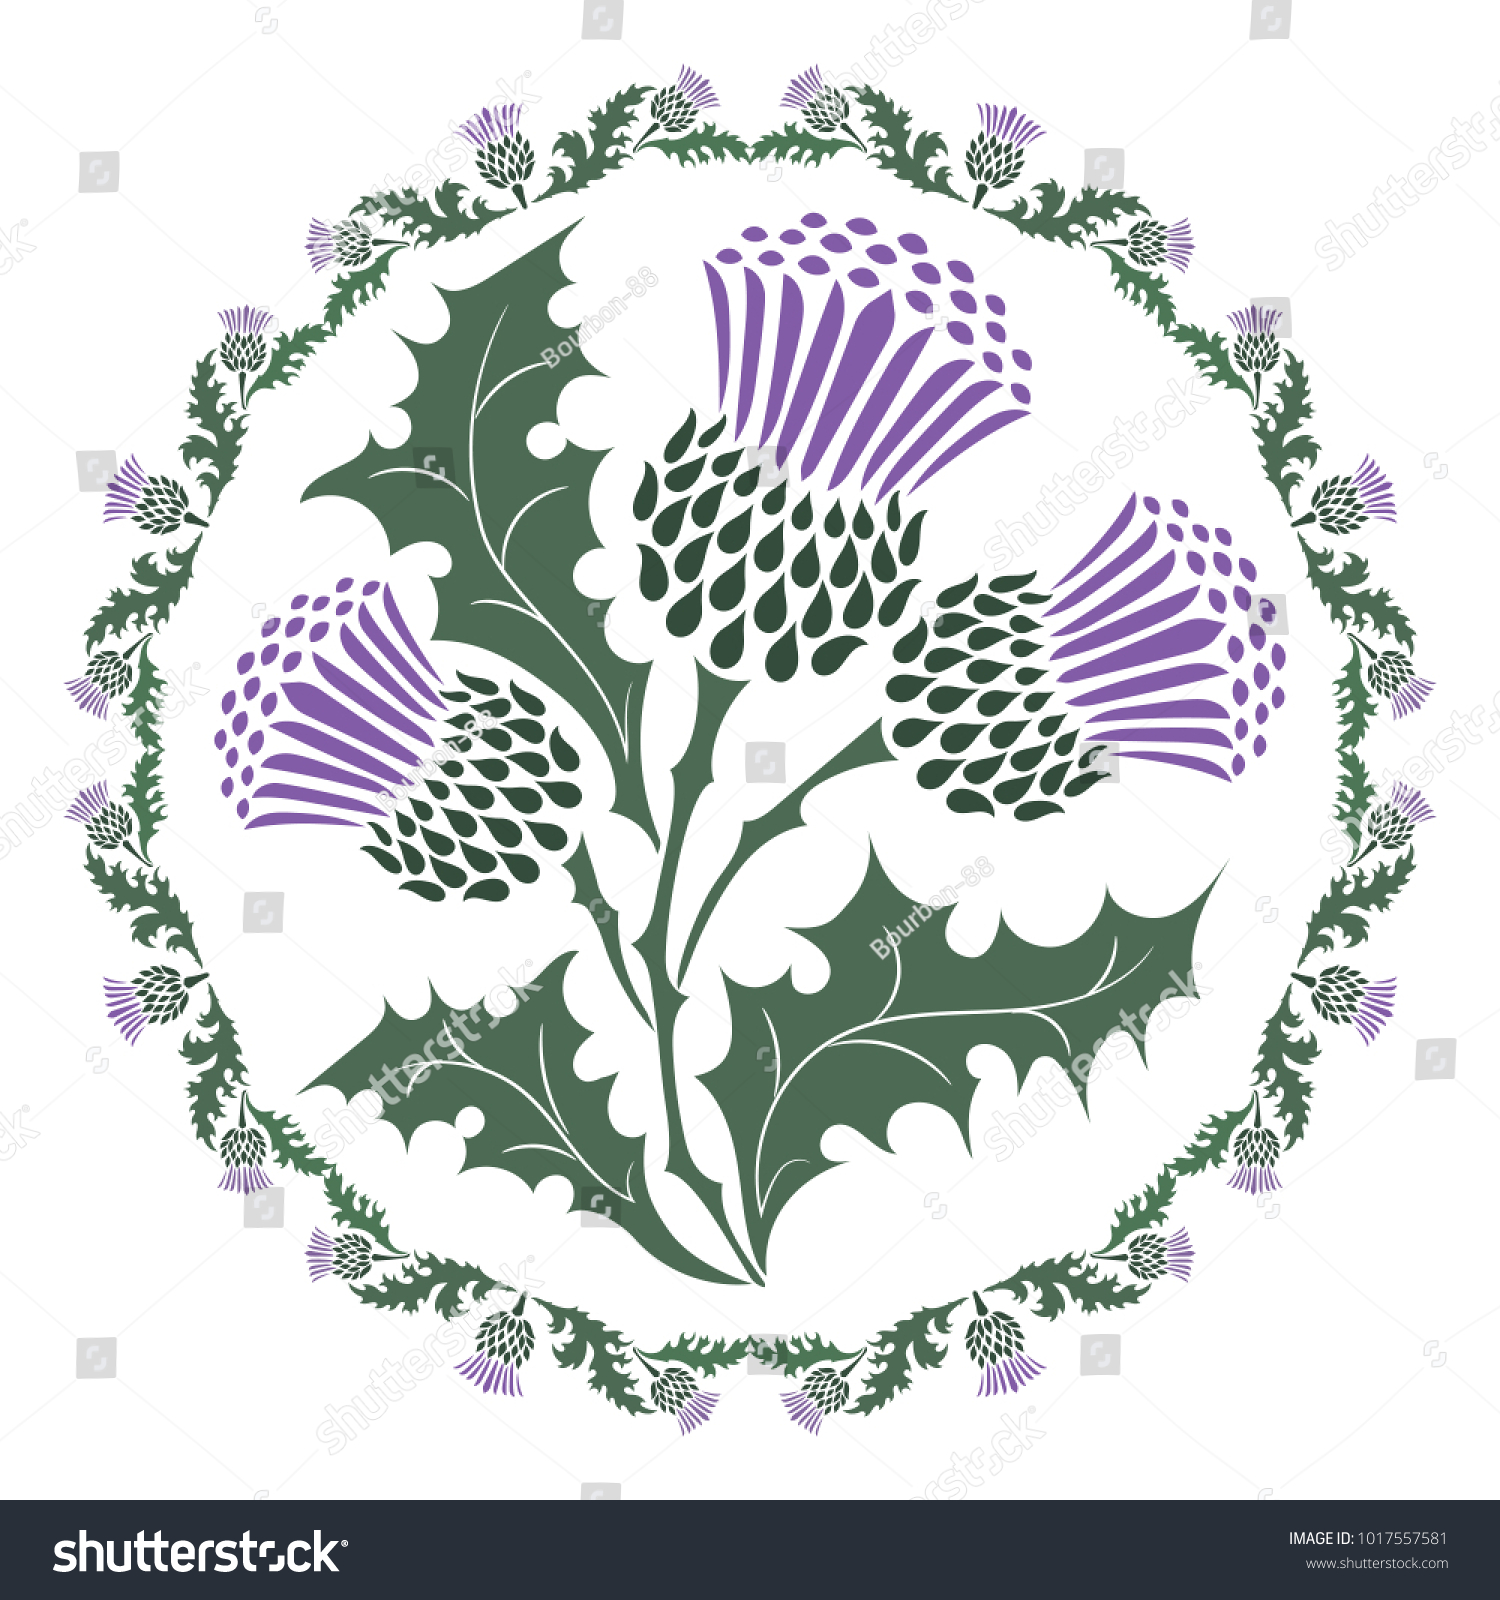 Thistle flower ornament round leaf thistle stock vector 1017557581 thistle flower and ornament round leaf thistle the symbol of scotland isolated on white buycottarizona Image collections